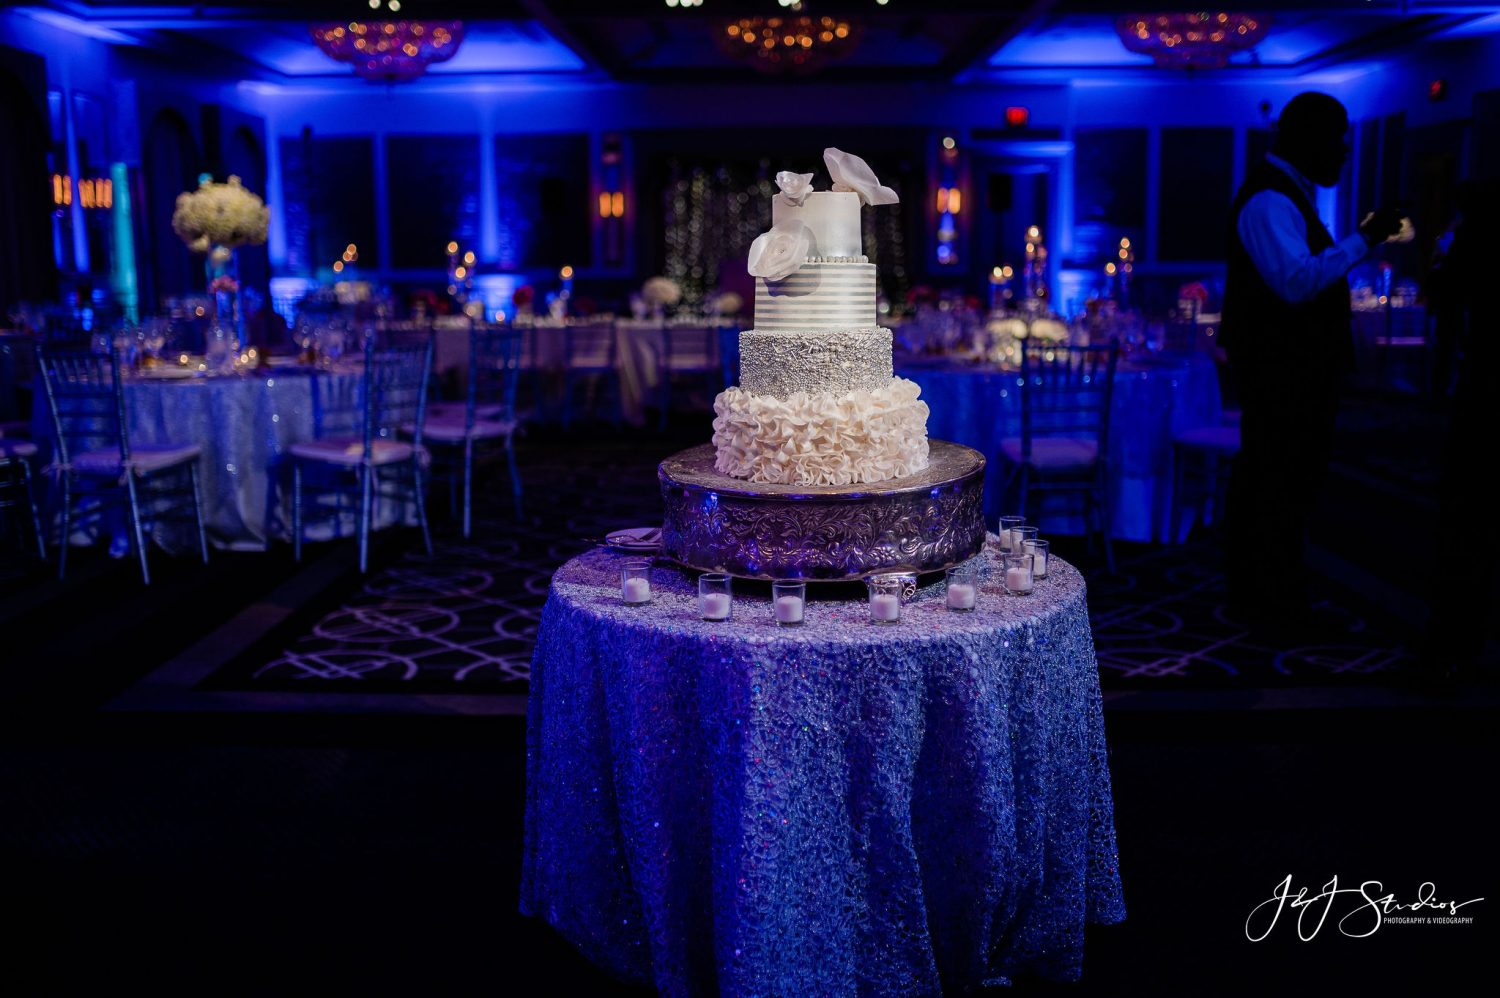 CAKE IN RECEPTION HALL